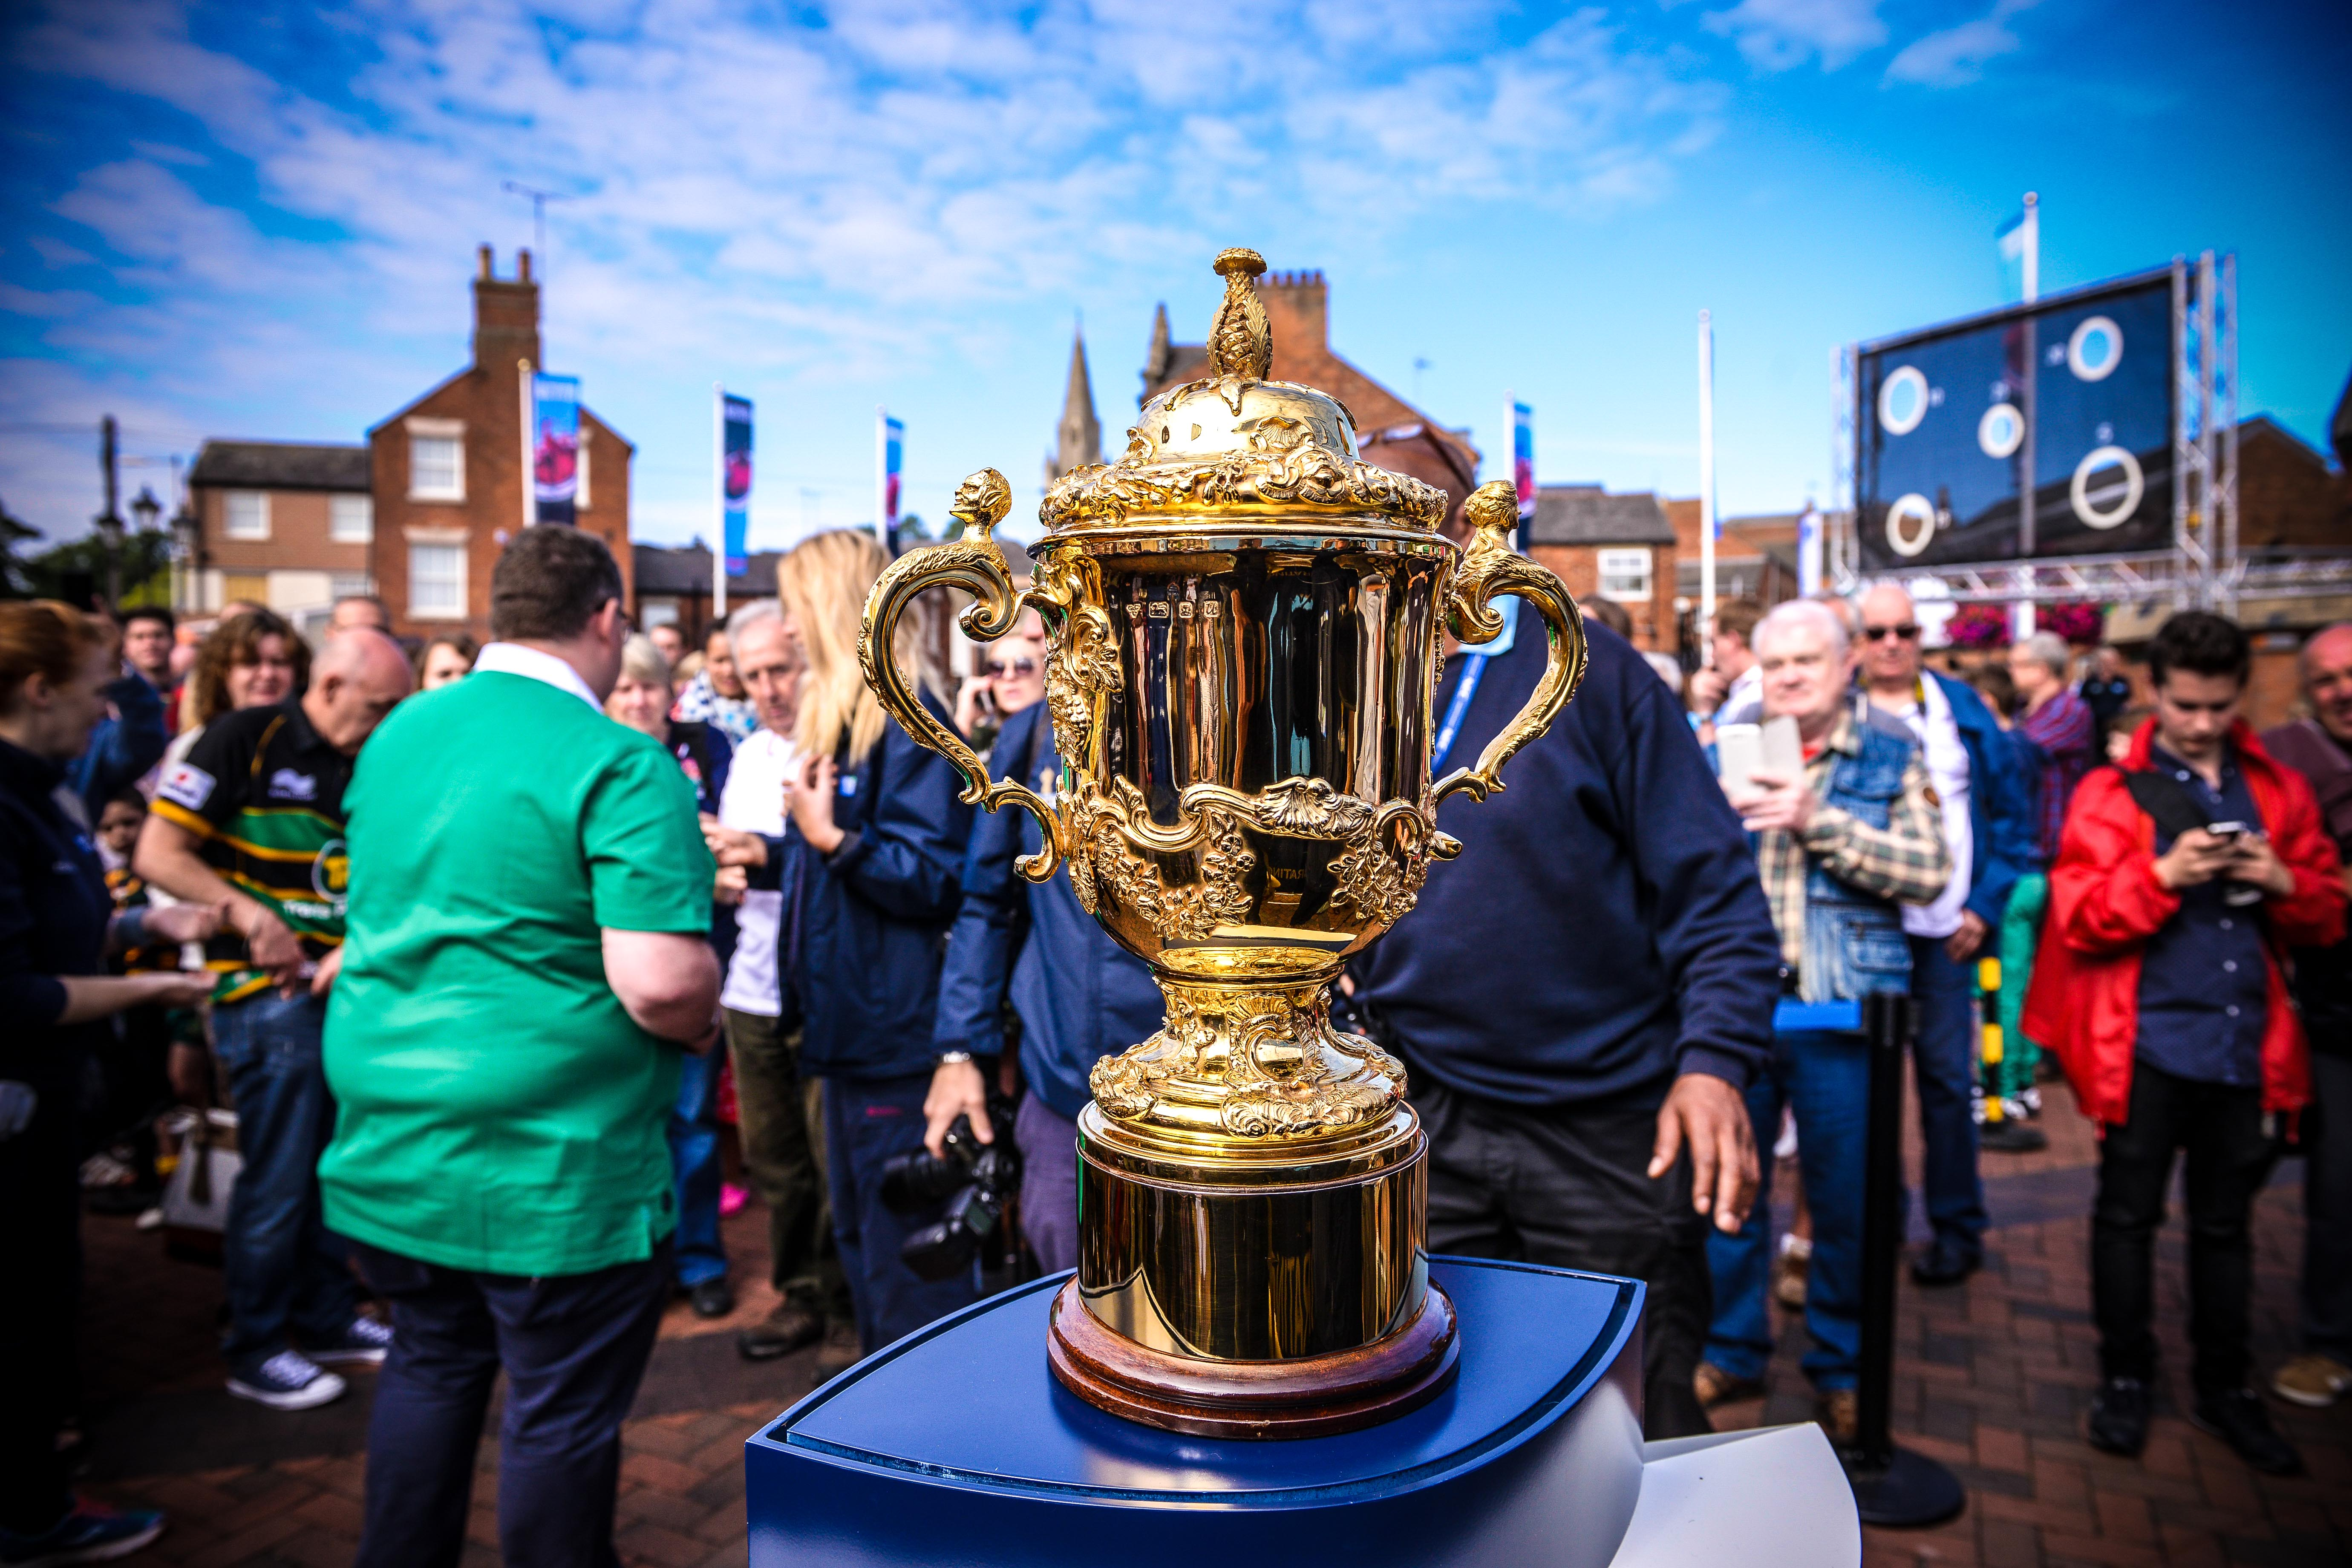 The Webb Ellis Cup was last in the Rugby town during Rugby World Cup 2015.